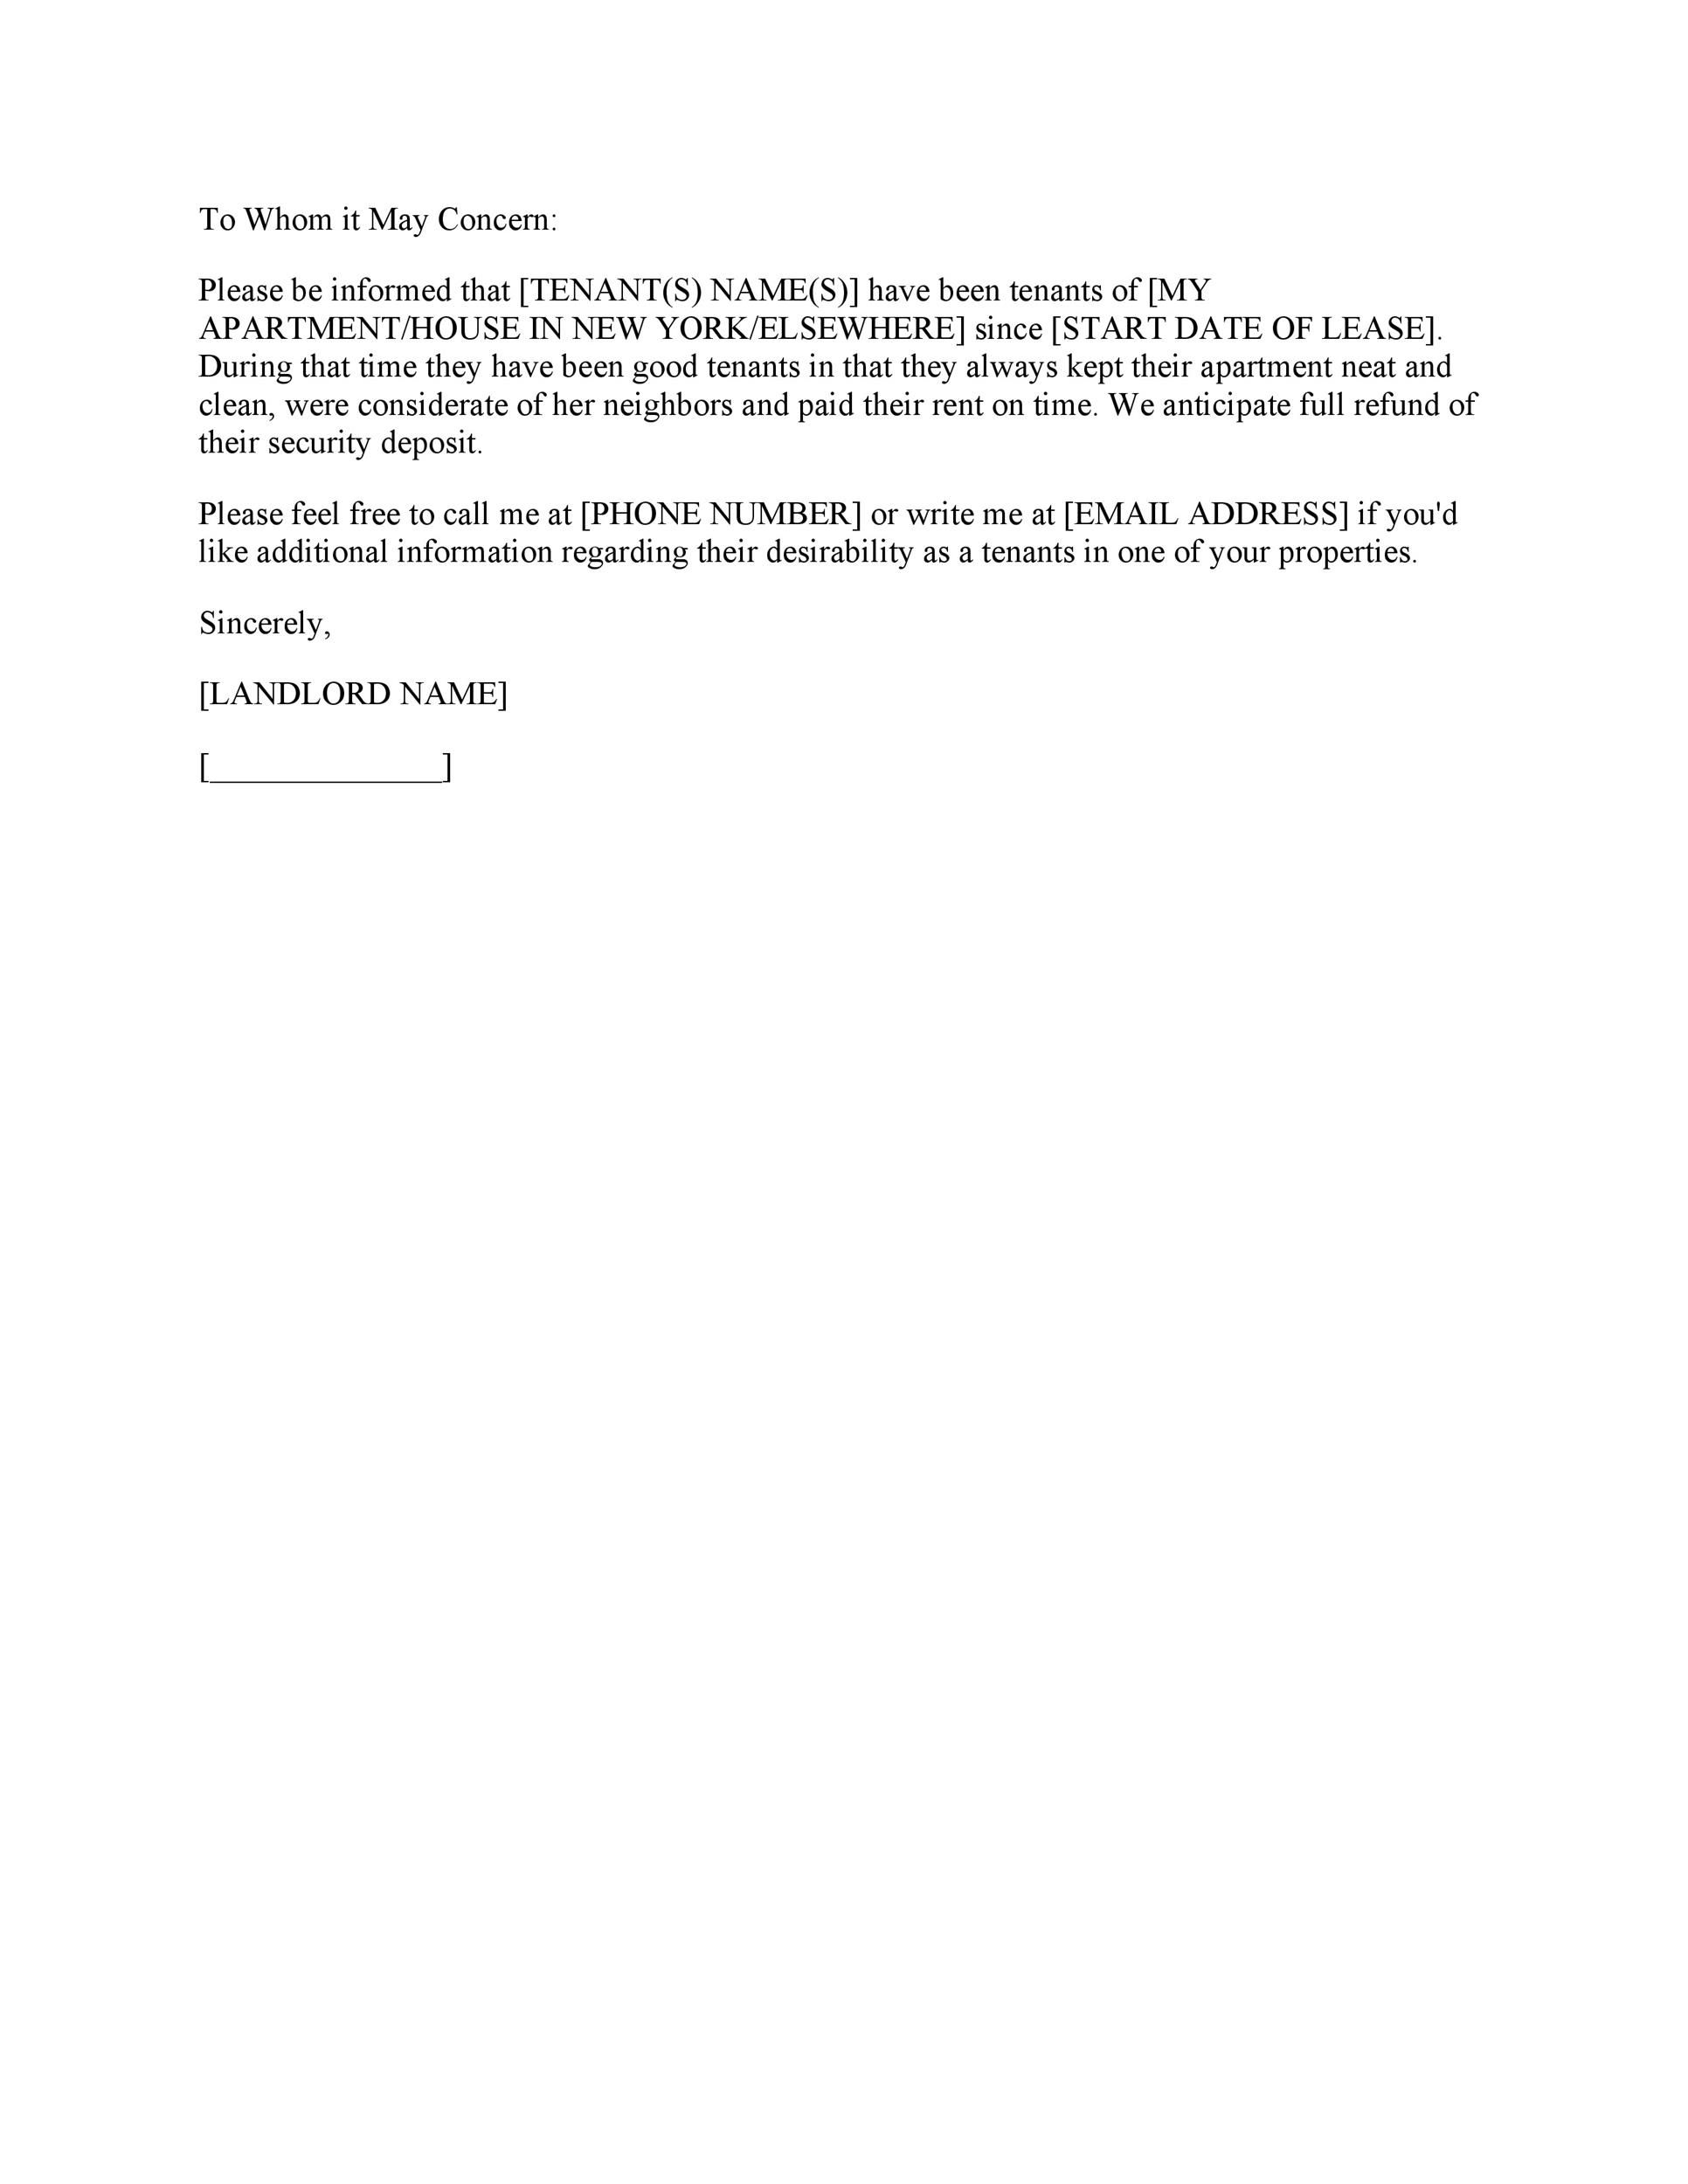 003 Unbelievable Free Reference Letter Template For Tenant Photo Full